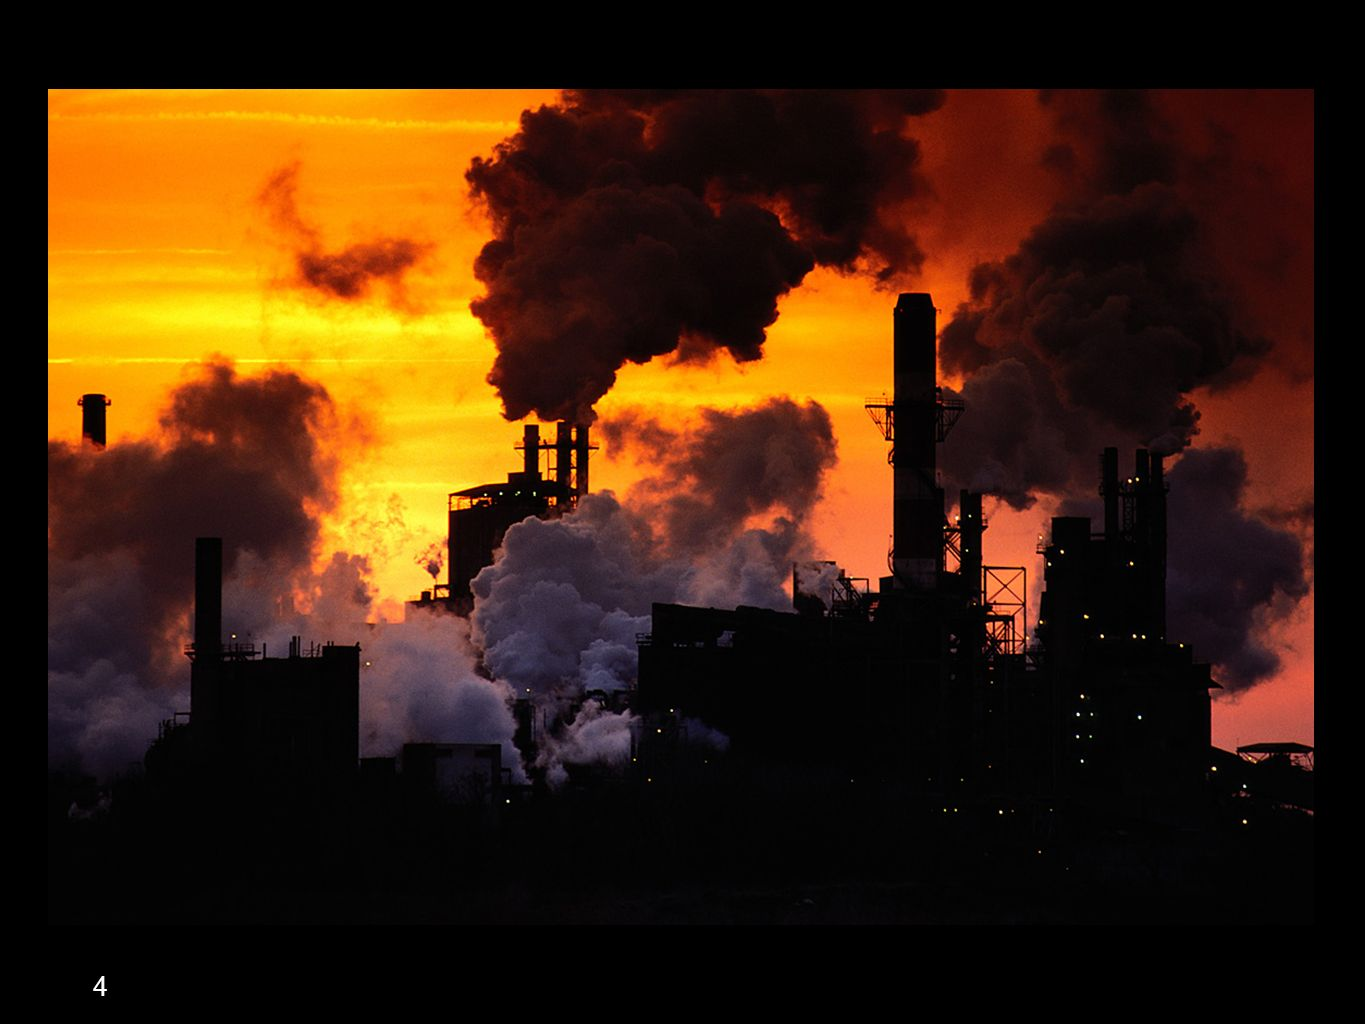 A Paper Mill (one of the largest polluters)